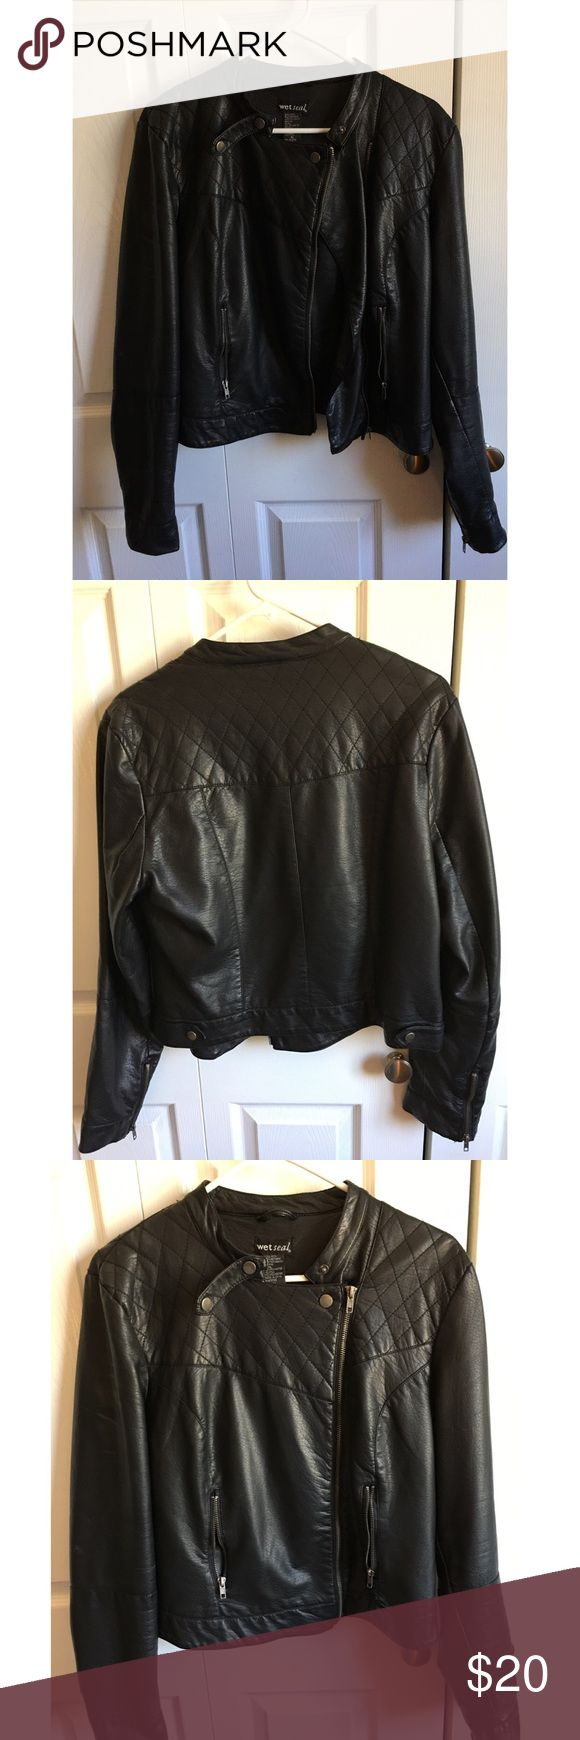 Black Faux Leather Jacket Wet Seal size XL faux leather jacket with quilting detail Wet Seal Jackets & Coats